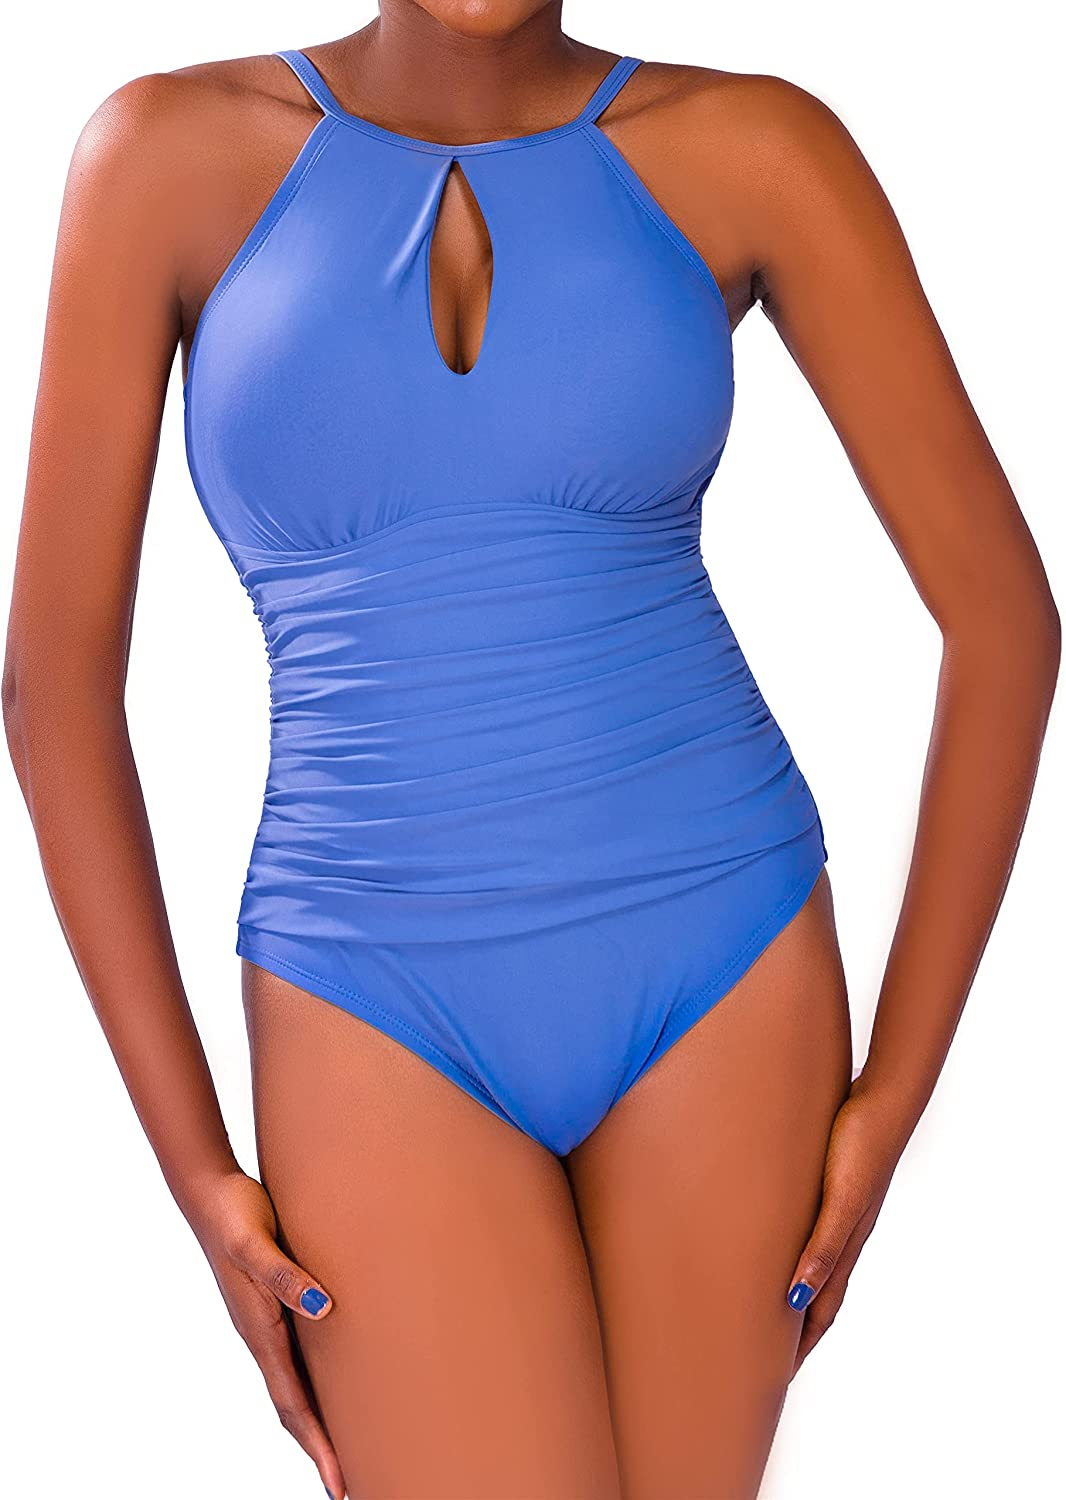 ROSEZUZU Women's one Piece High quality Max 70% OFF Swimsuit Solid Control an Tummy Color